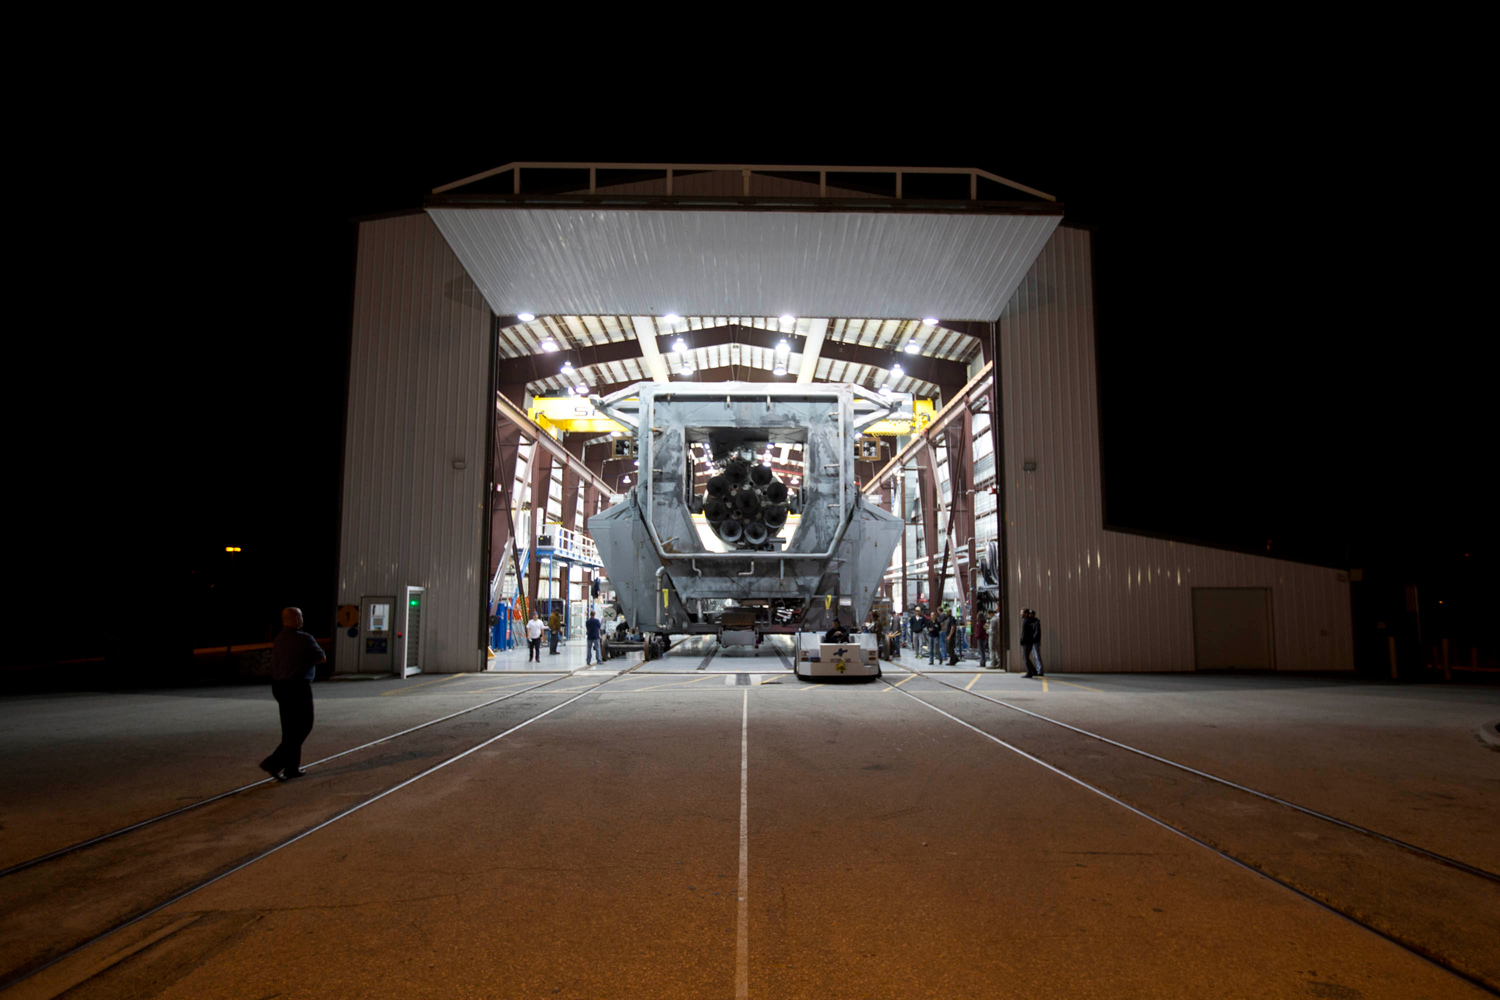 SpaceX's Falcon 9 rolls out of the hangar on Nov. 28, 2013.